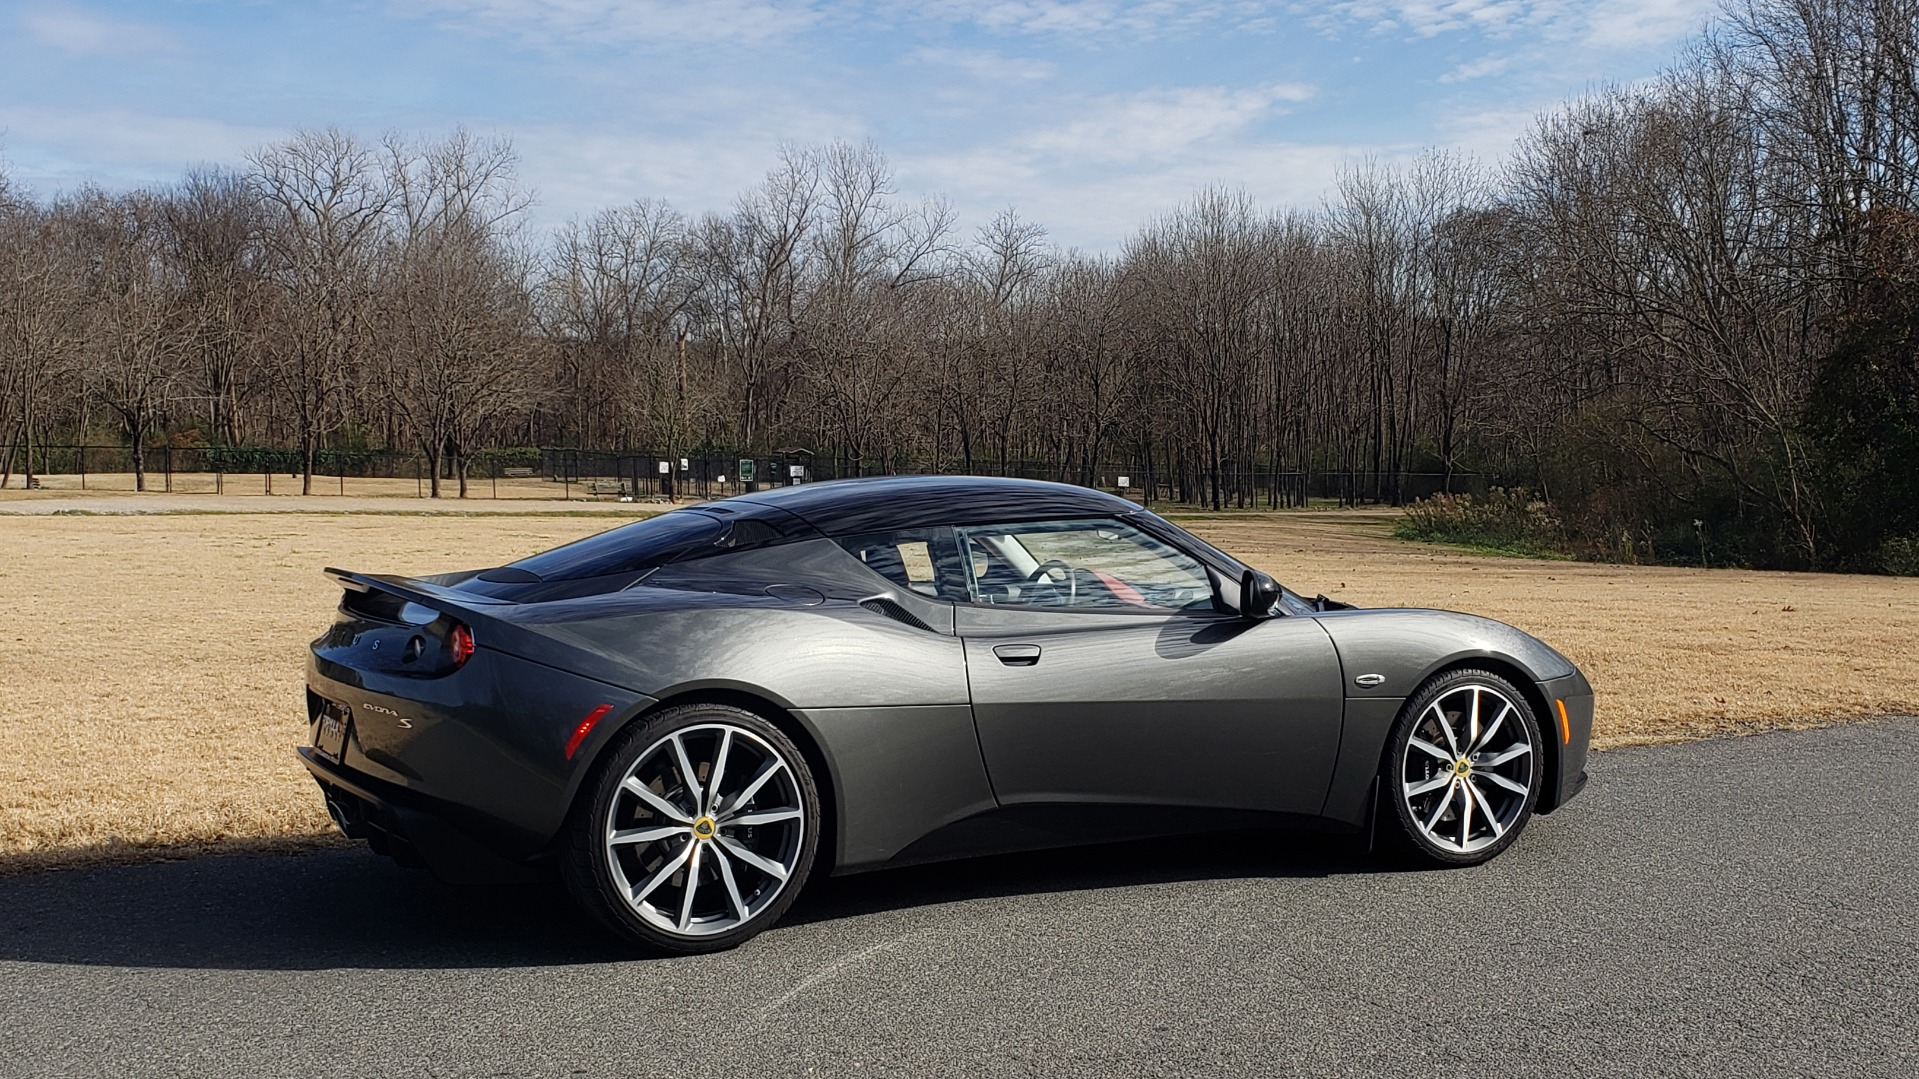 Used 2011 Lotus EVORA S 2+2 / 3.5L V6 / 6-SPD MANUAL / PIONEER / REARVIEW / LOW MILES for sale Sold at Formula Imports in Charlotte NC 28227 8